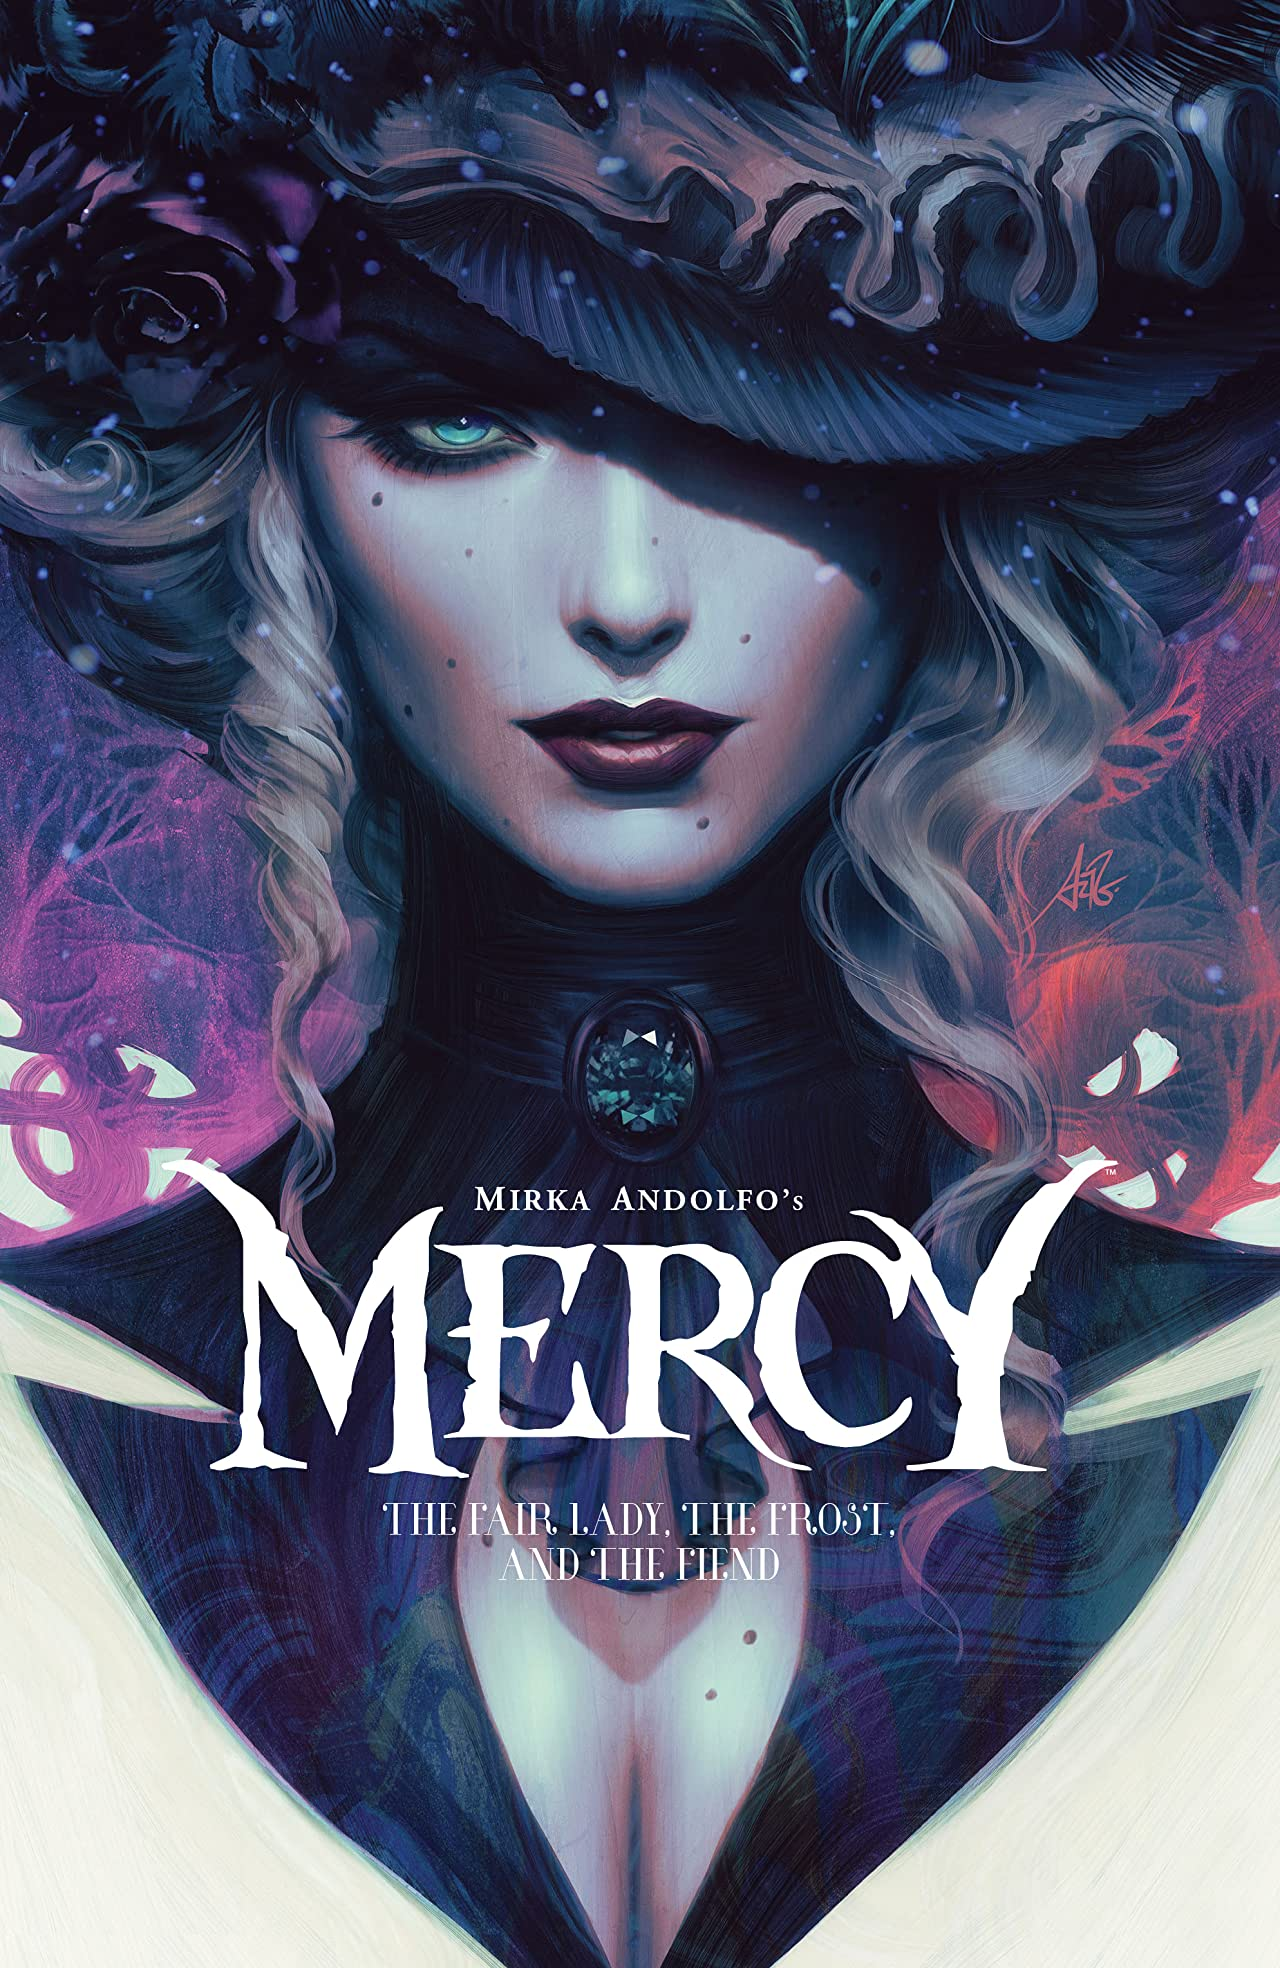 Mirka Andolfo's Mercy Vol. 1: The Fair Lady The Frost And The Fiend